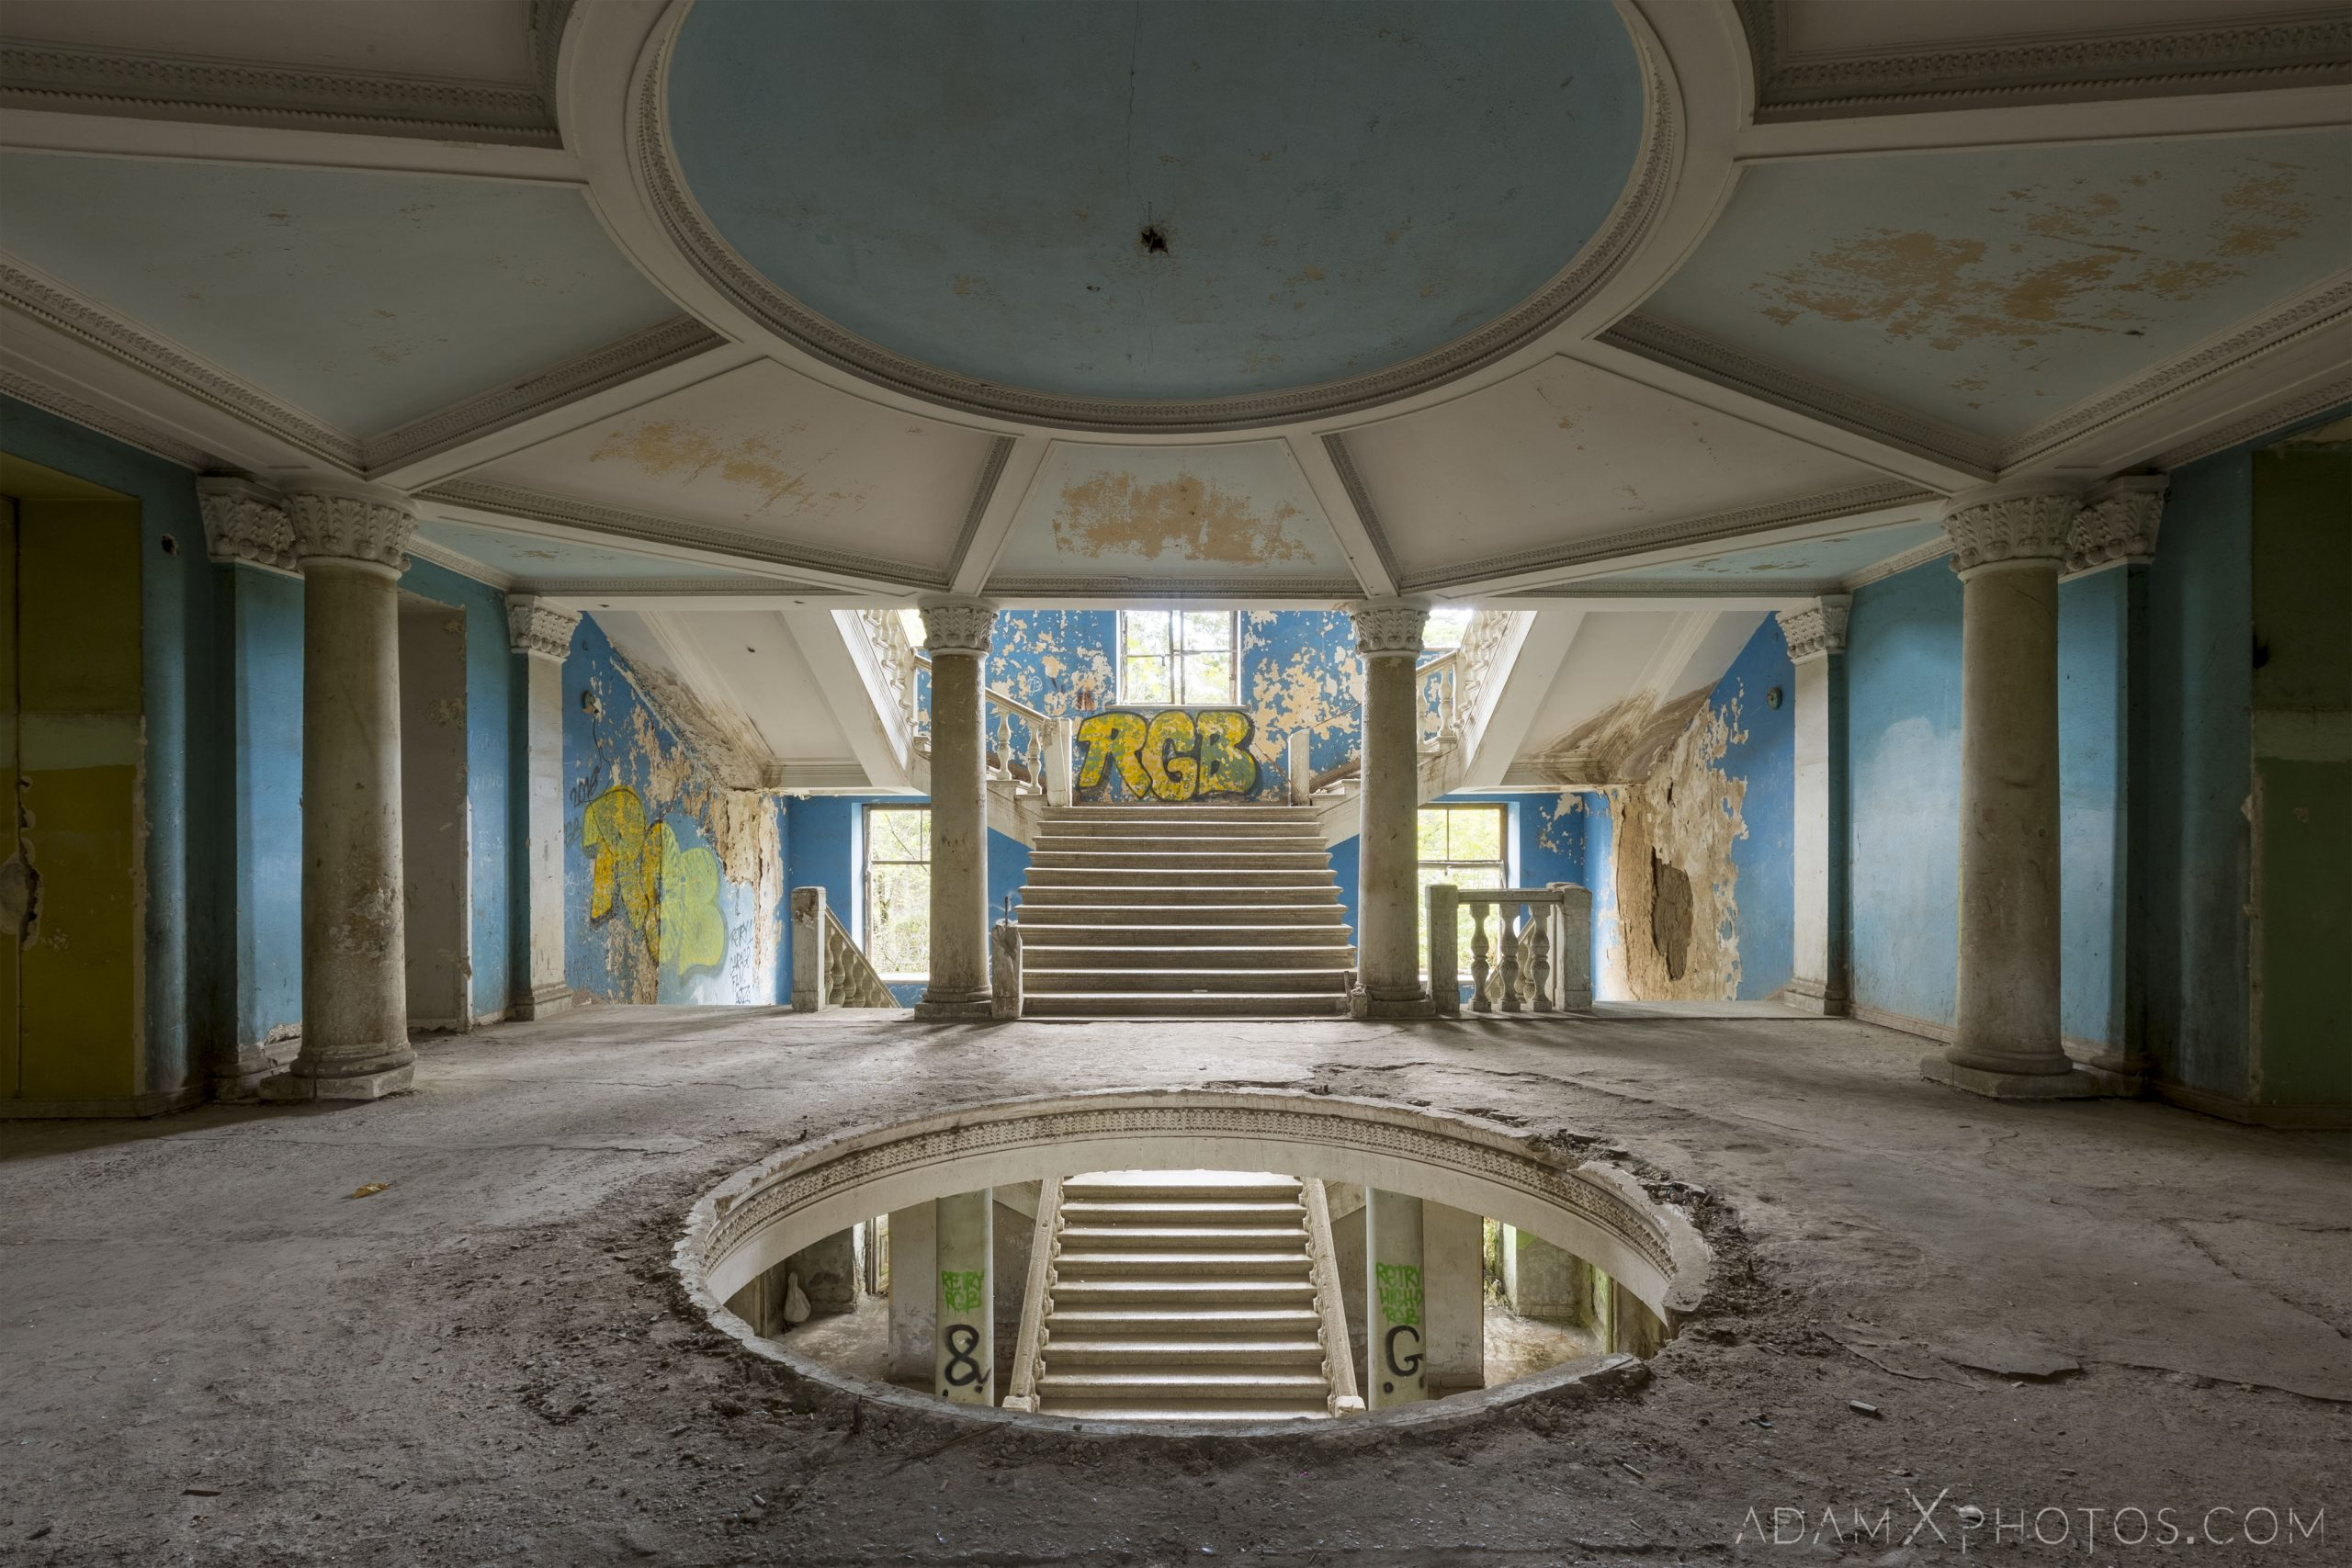 Blue stairs ceiling hole circular graffiti Sanatorium Iveria Tskaltubo Georgia Soviet era Adam X Urbex Urban Exploration 2018 Abandoned Access History decay ruins lost forgotten derelict location creepy haunting eerie security